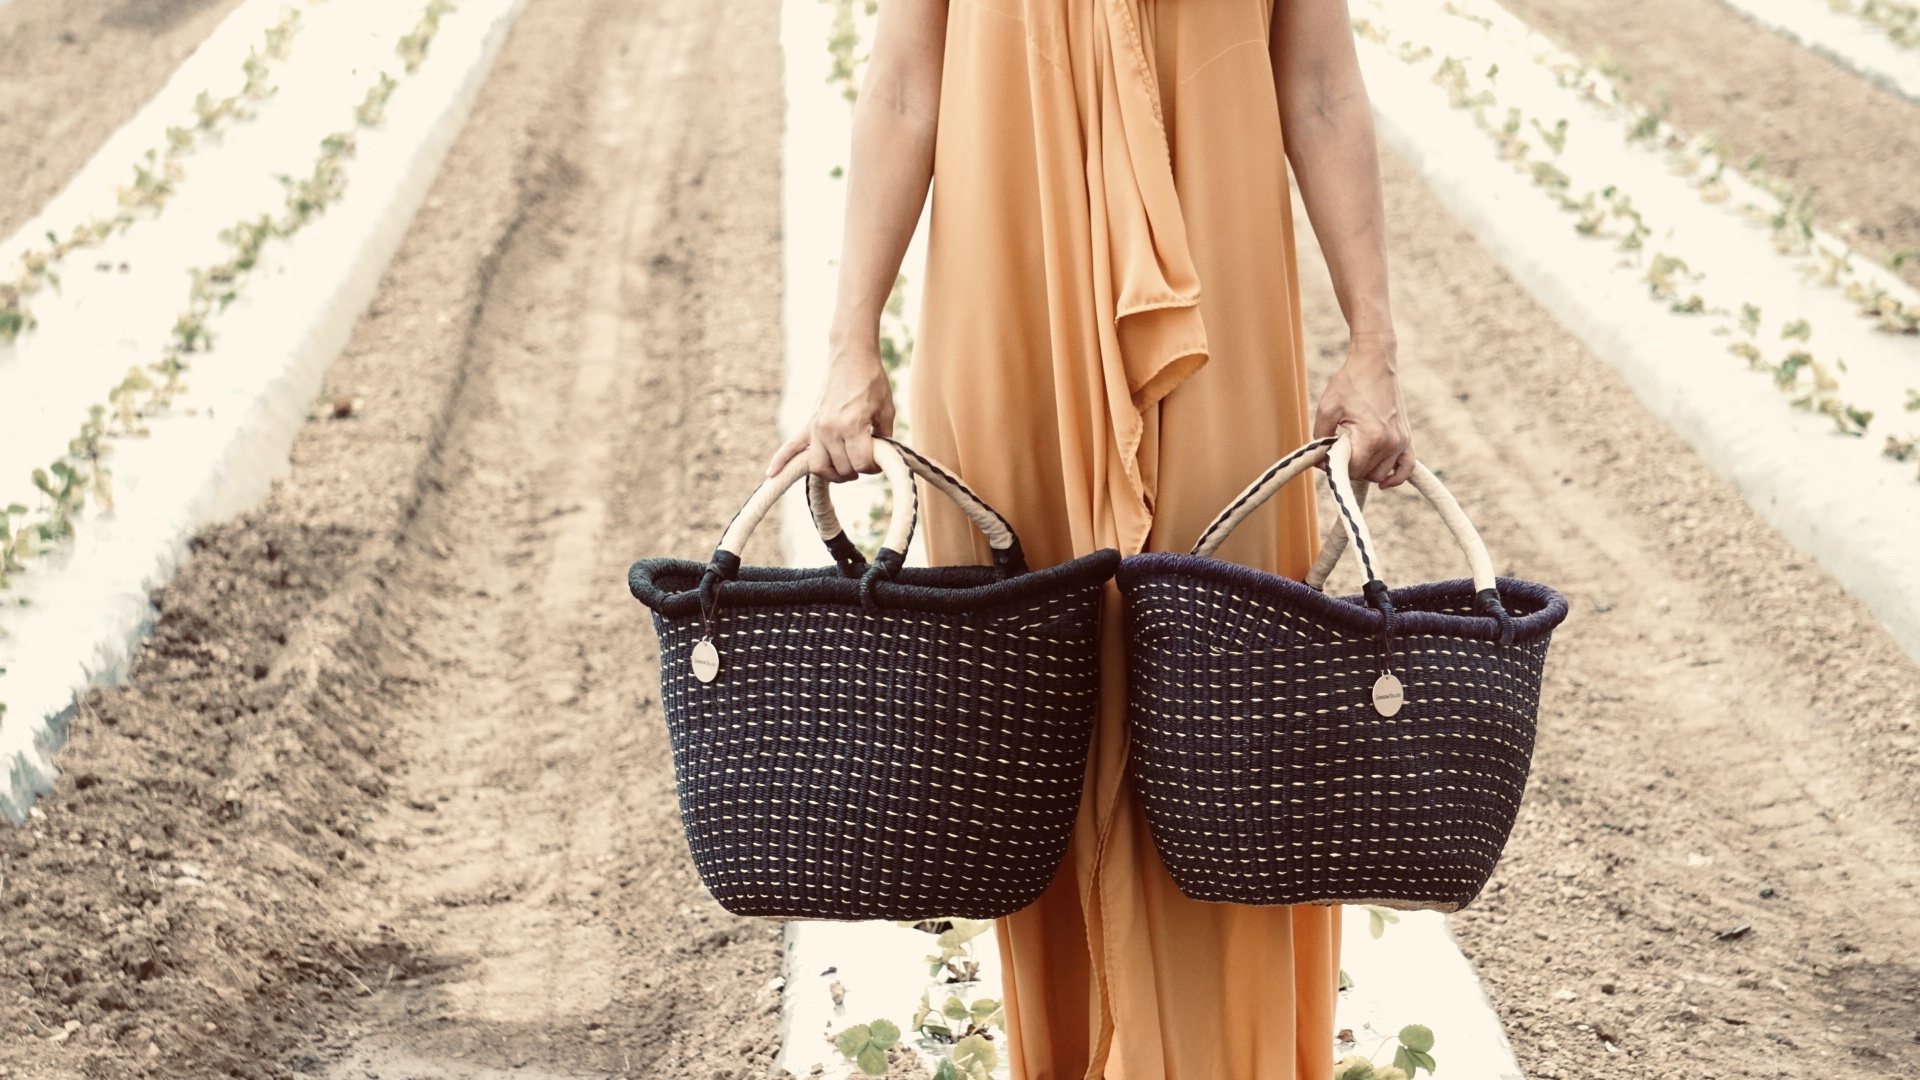 Sonder-and-Holliday-large-baskets-with-l